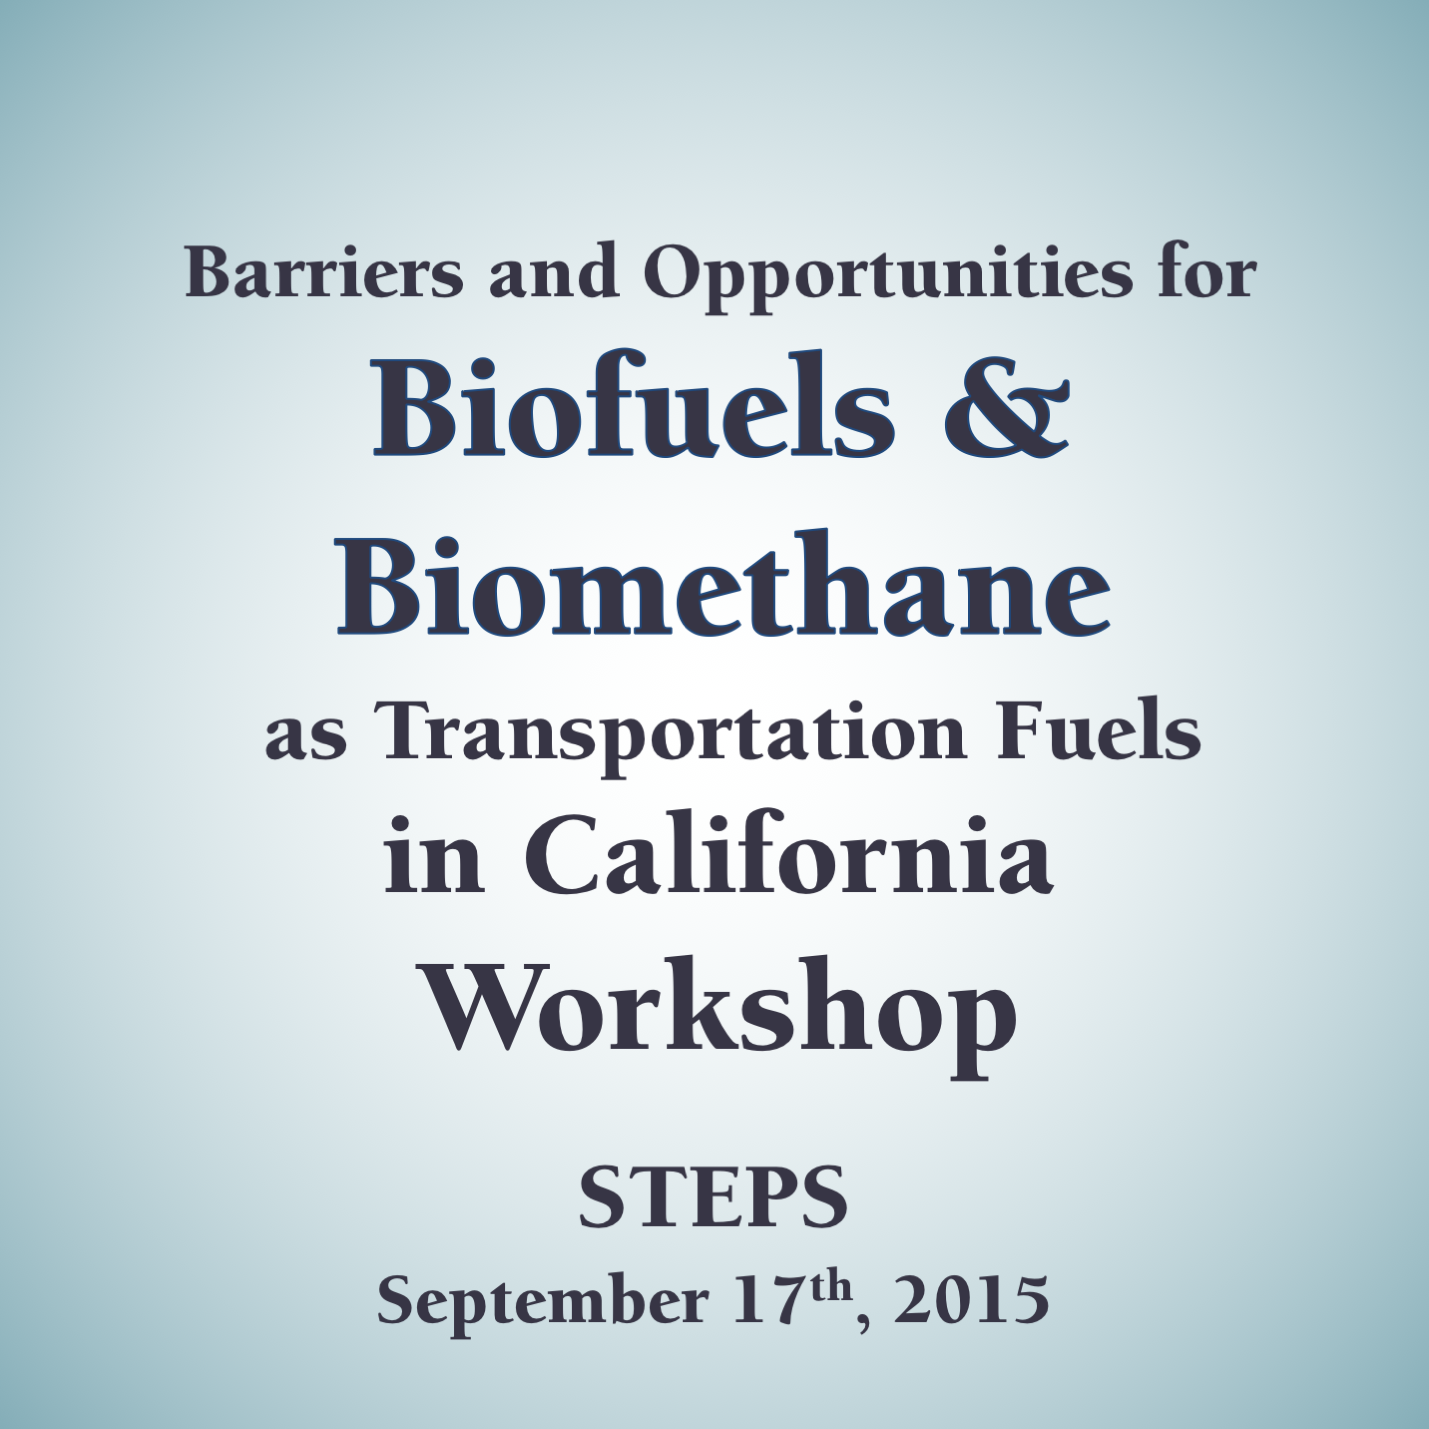 Barriers & Opportunities for Biofuels & Biomethane as Transportation Fuels in California Workshop